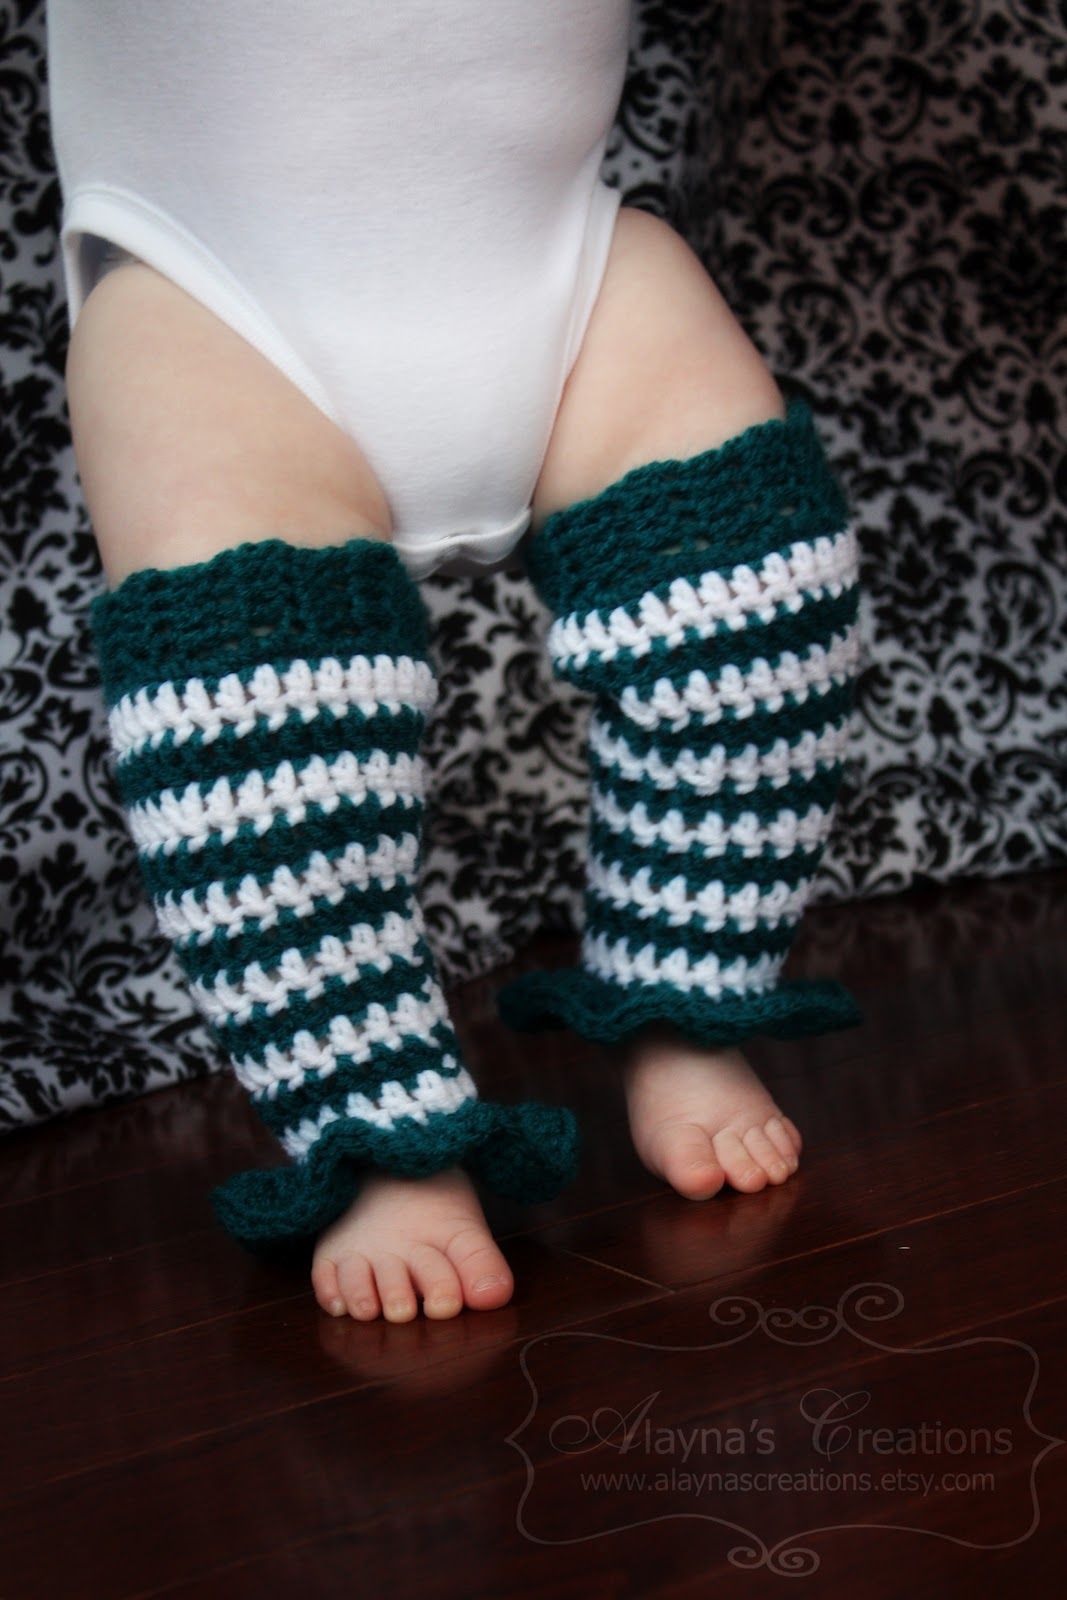 Free Crochet Pattern Toddler Leg Warmers : Alaynas Creations: My First Crochet Pattern! Ruffled Baby ...